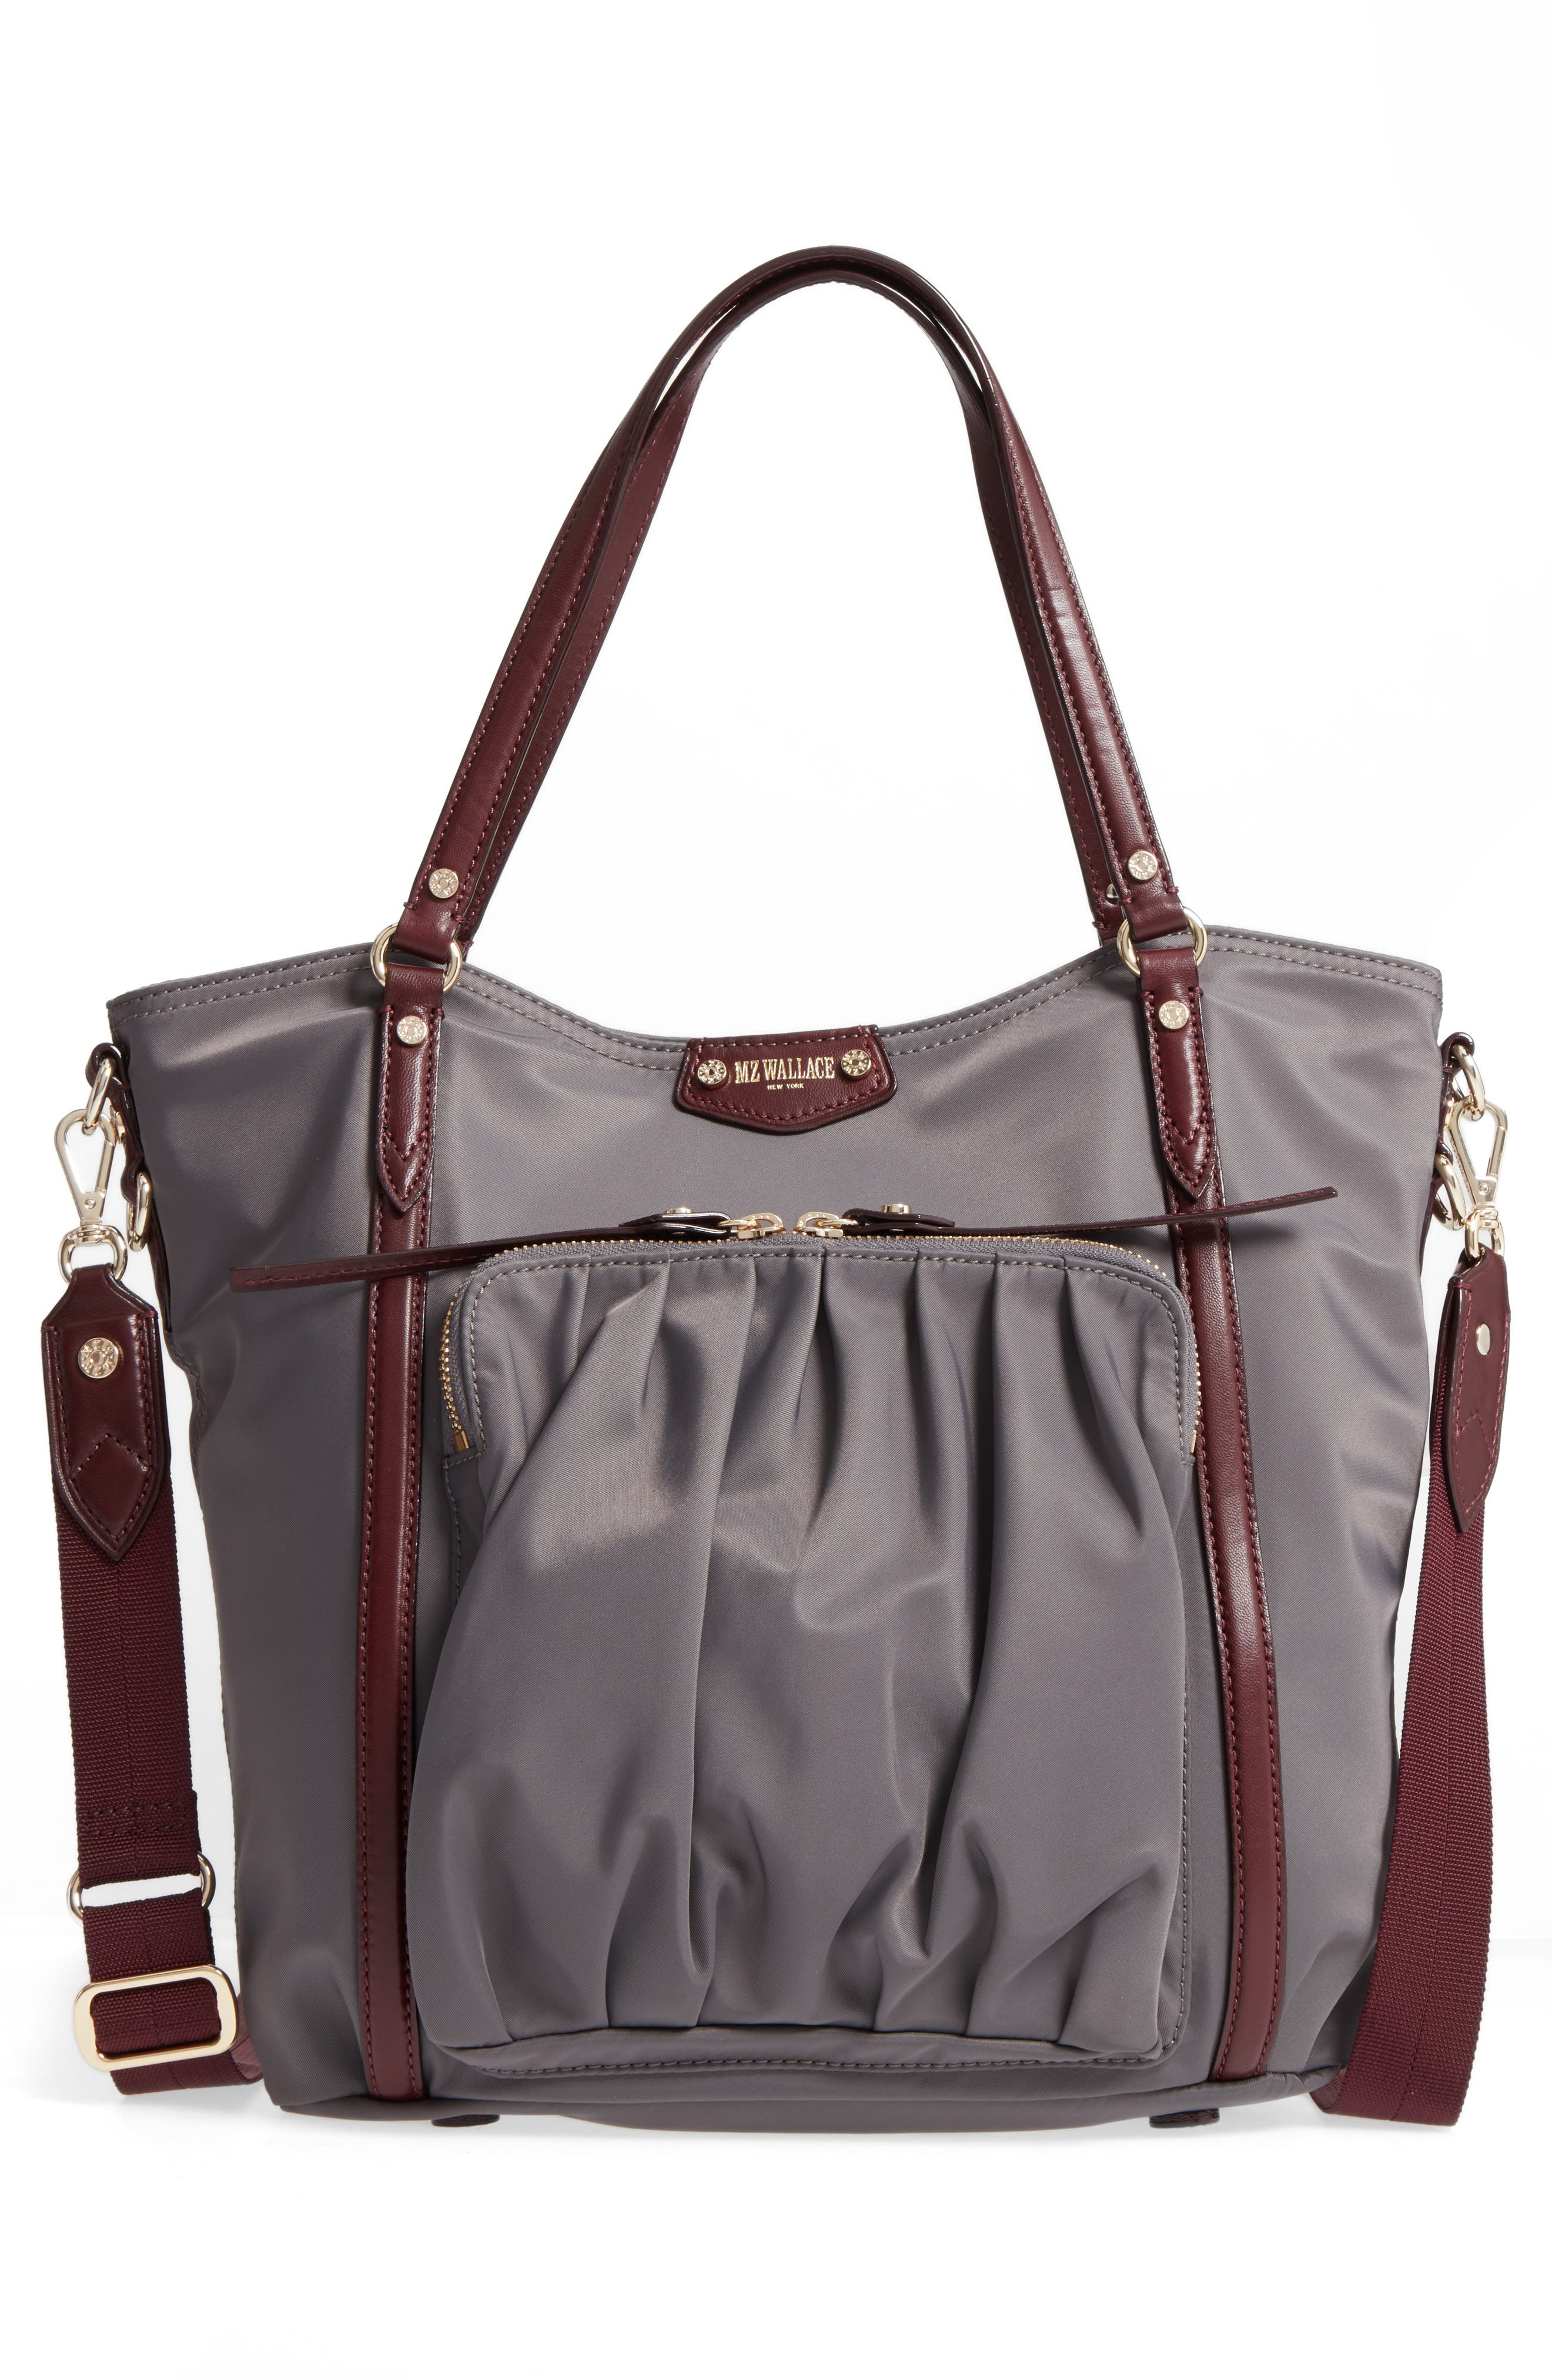 Nikki Nylon Satchel,                             Alternate thumbnail 3, color,                             023